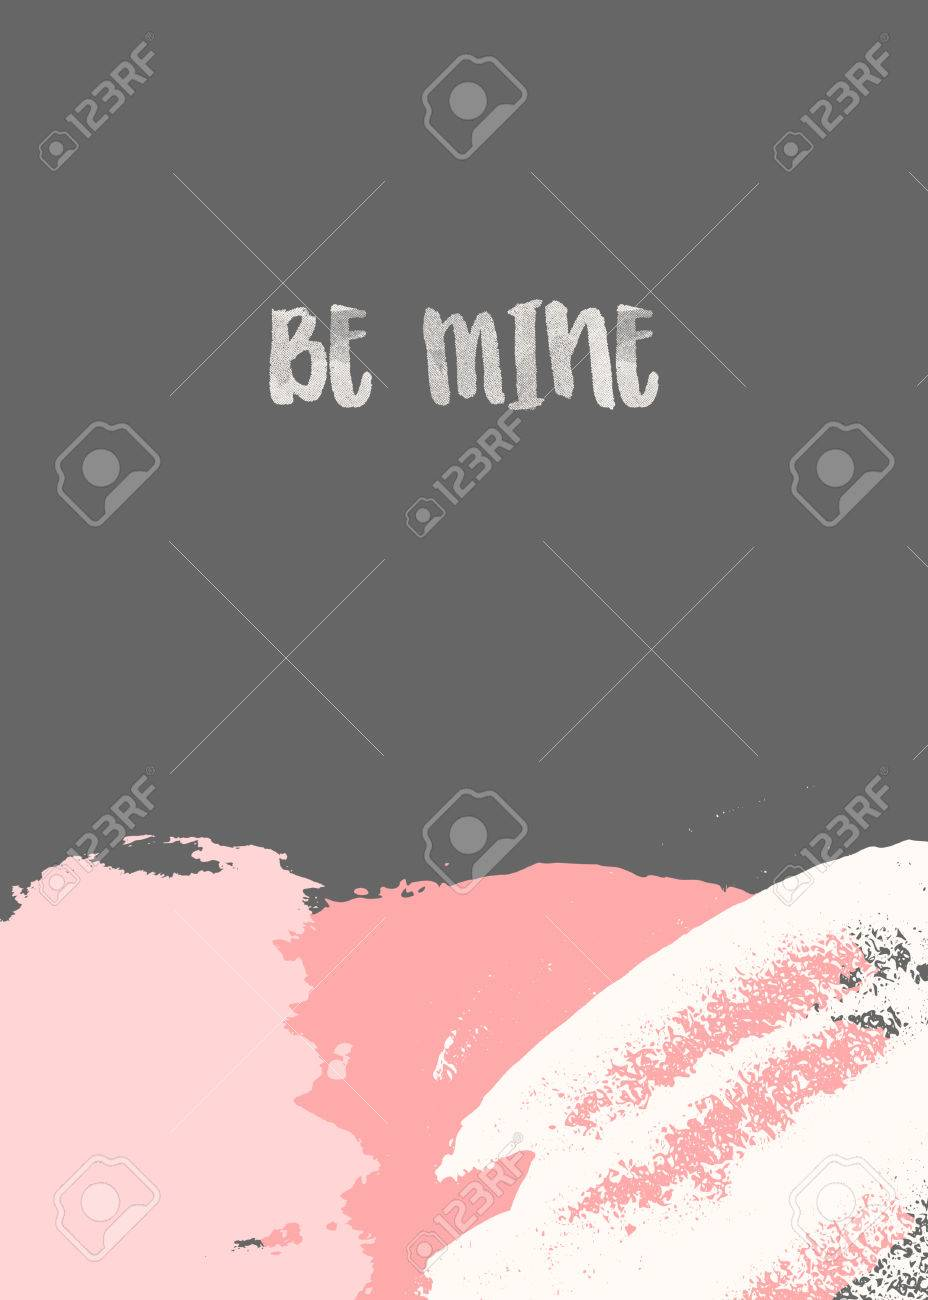 Creative Greeting Card Template For Valentines Day With Abstract